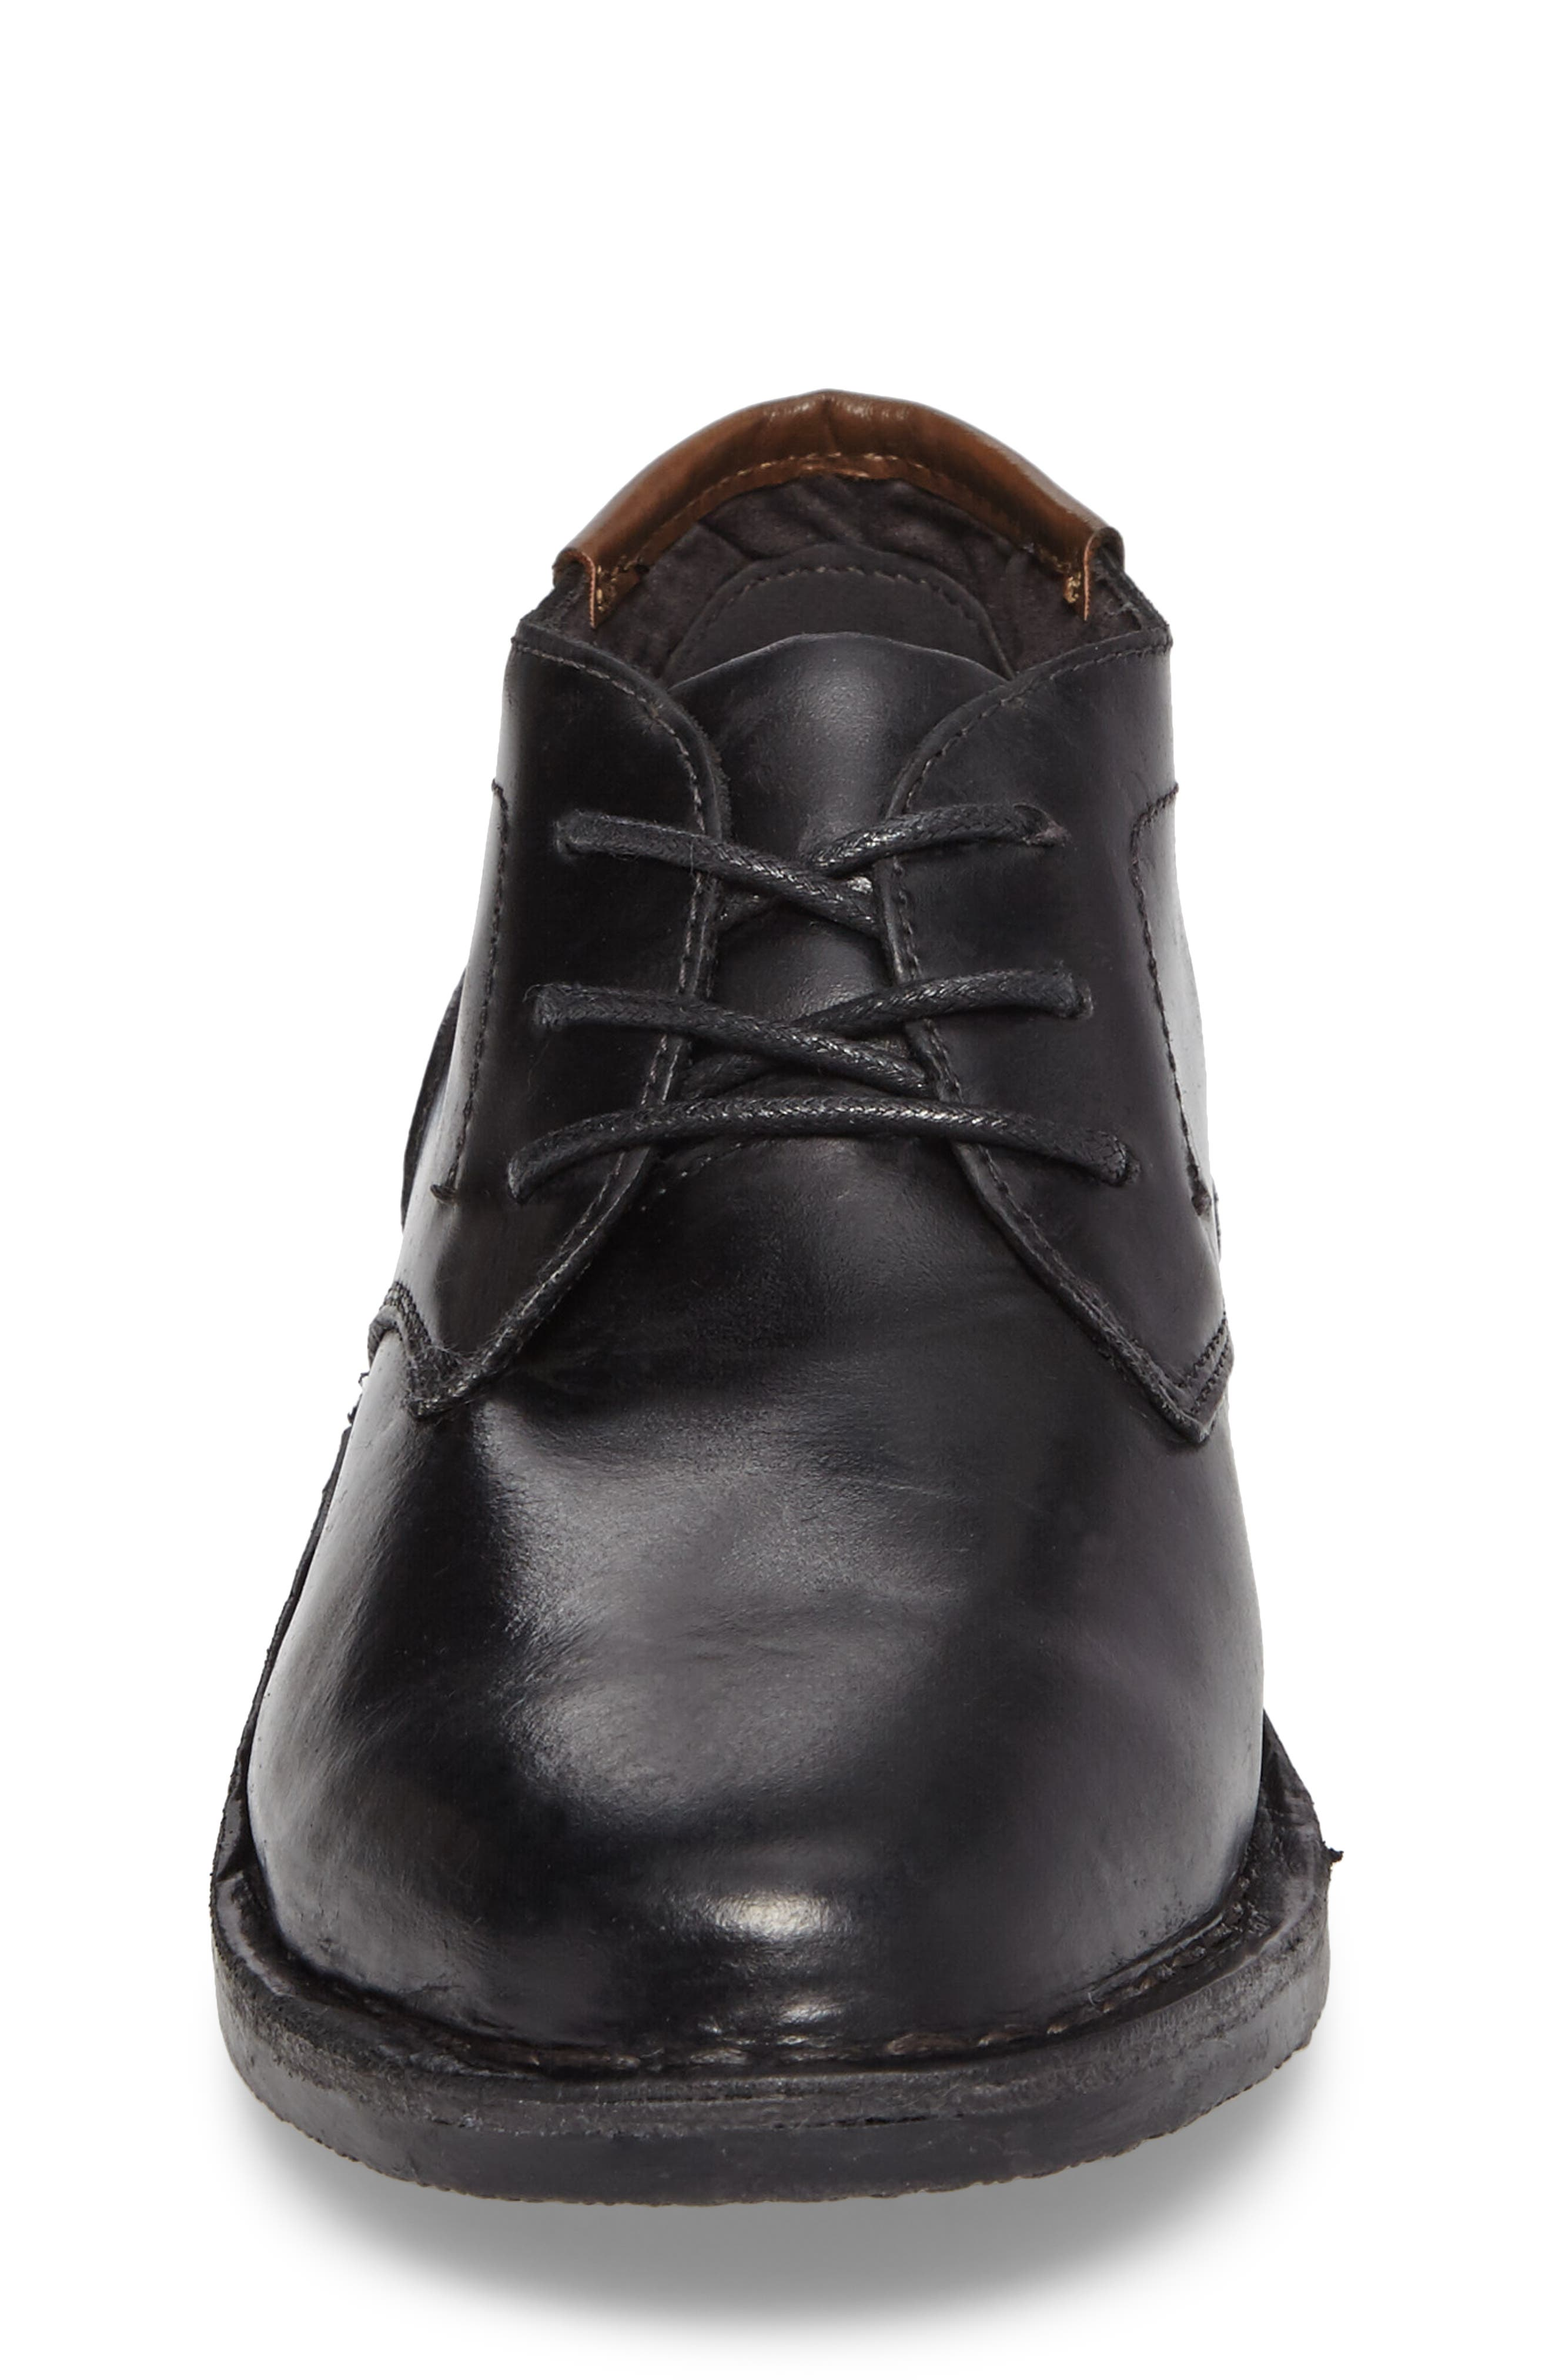 KENNETH COLE NEW YORK, Real Deal Chukka Boot, Alternate thumbnail 4, color, BLACK LEATHER